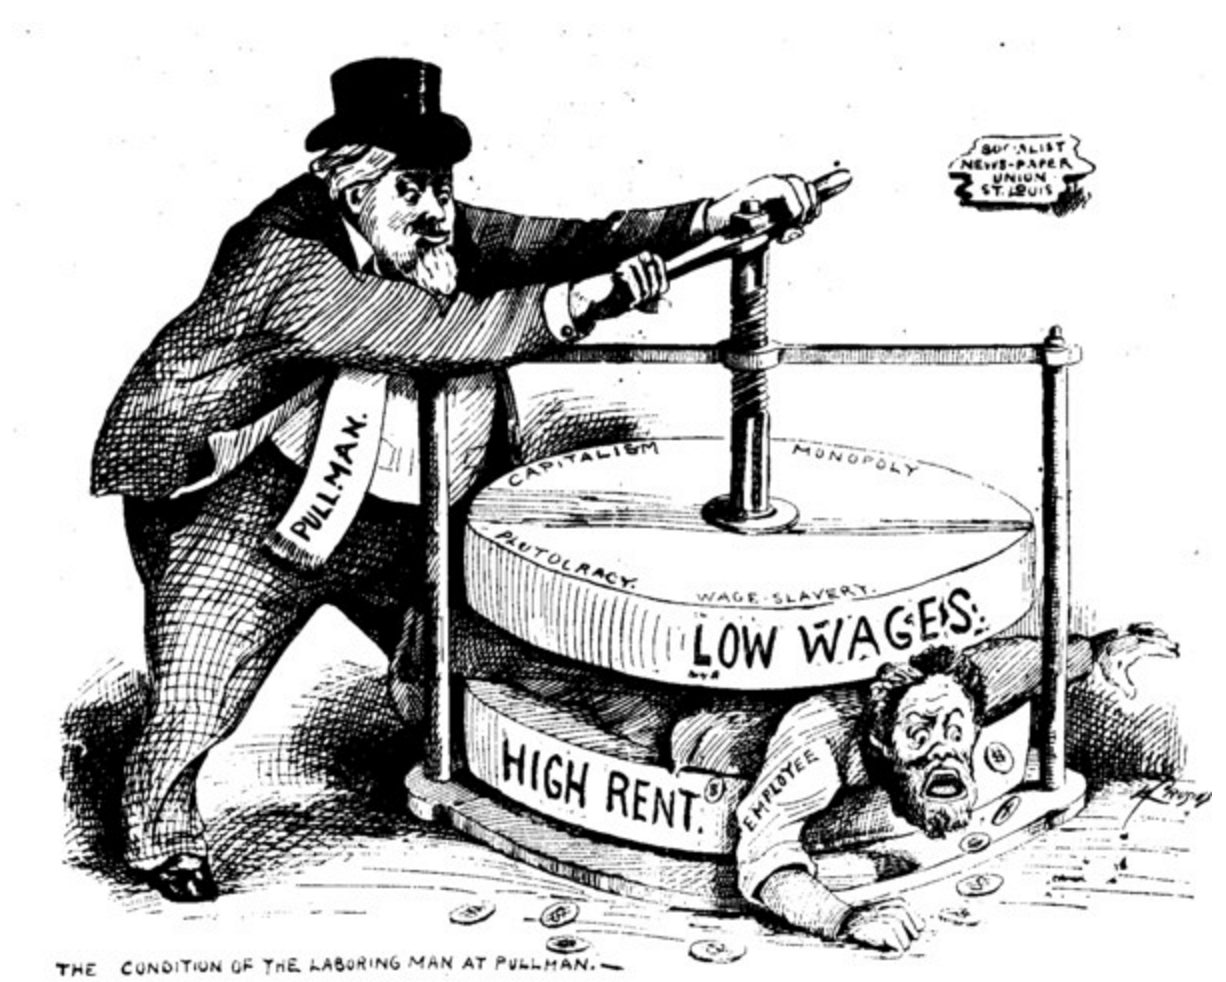 The Gilded Age has striking similarities with today, but not for the reasons you think